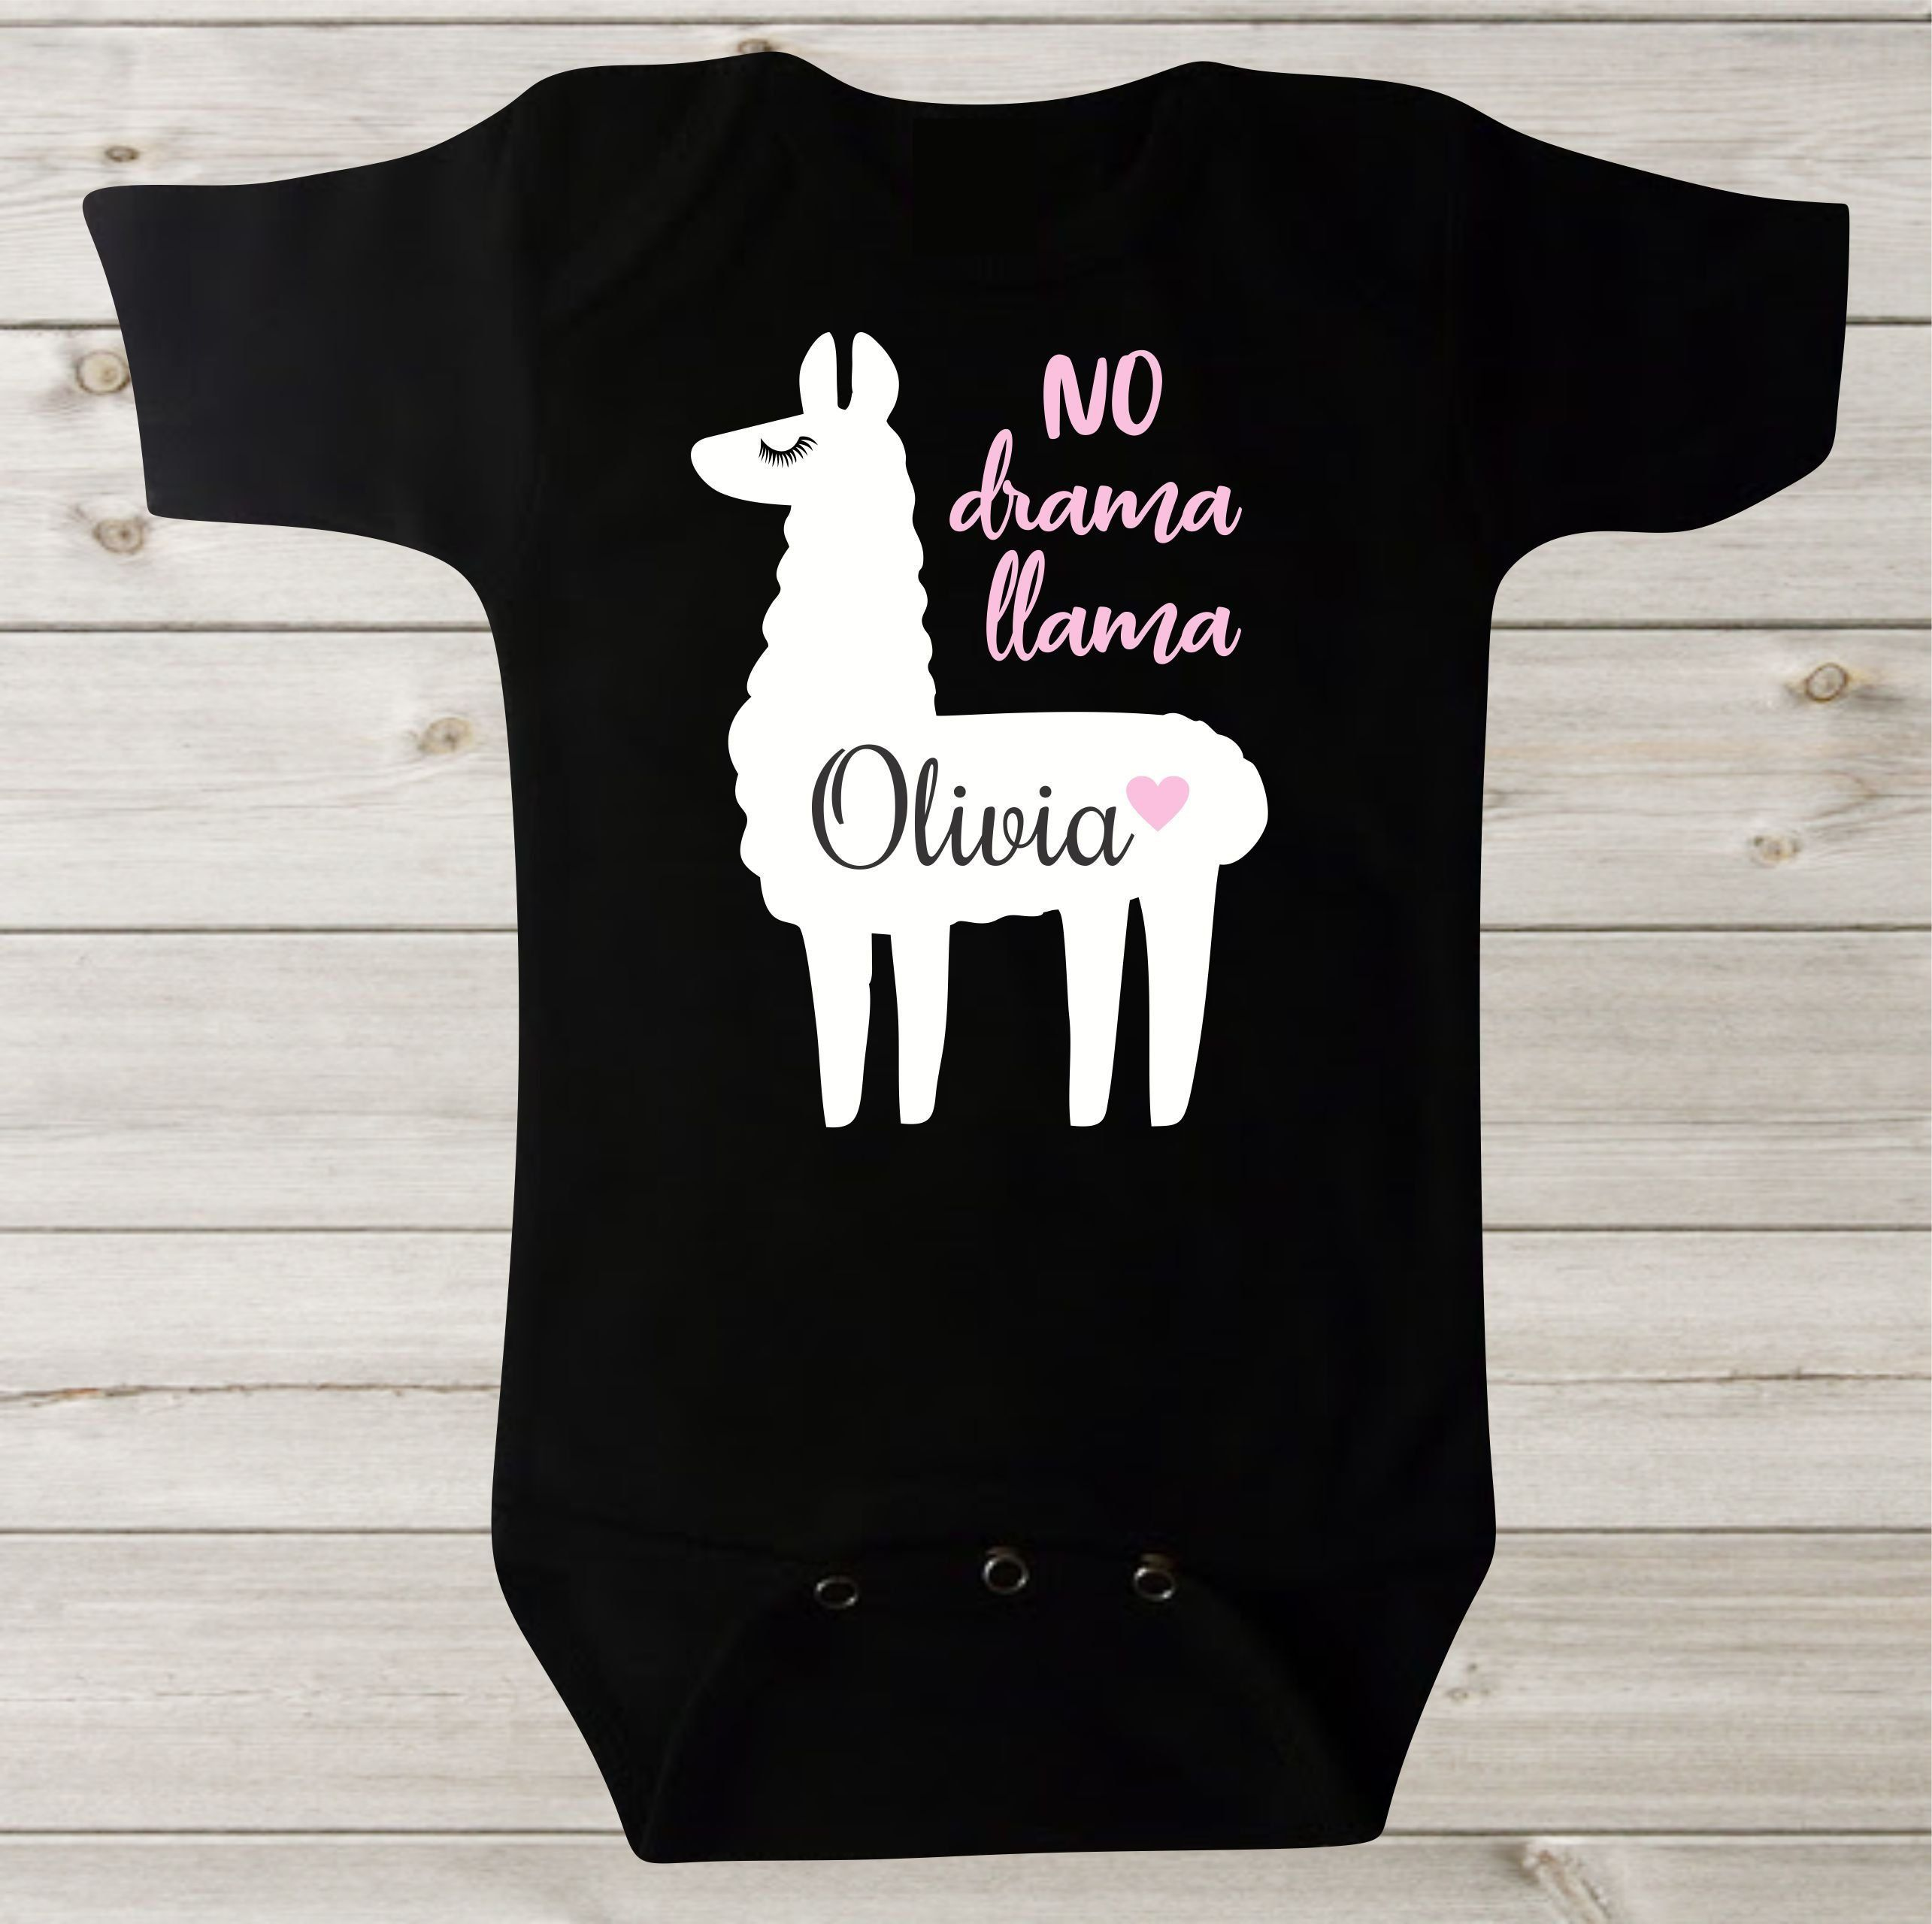 Llama Baby Outfit Come se Llama Funny Baby Bodysuit Gold Glitter Girl Or Boy Unisex Baby Gift